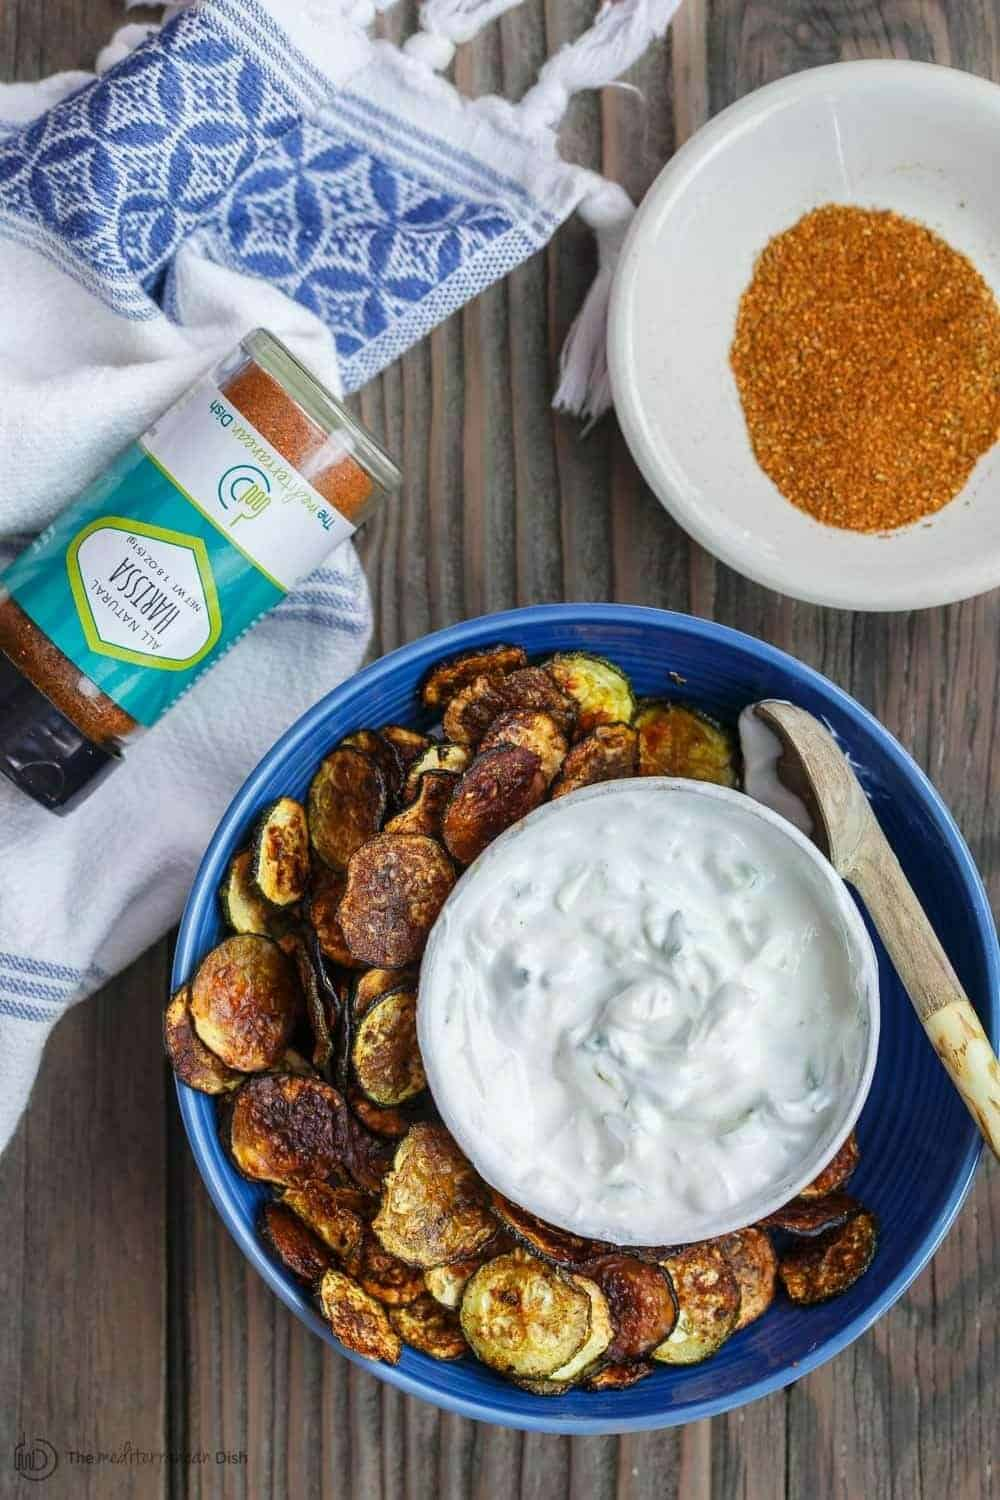 Baked Zucchini Chips Recipe | The Mediterranean Dish. Get my tips for how to make perfectly crispy baked zucchini chips! Tasty, healthy, low-calorie snack that everyone loves. From TheMediterraneanDish.com